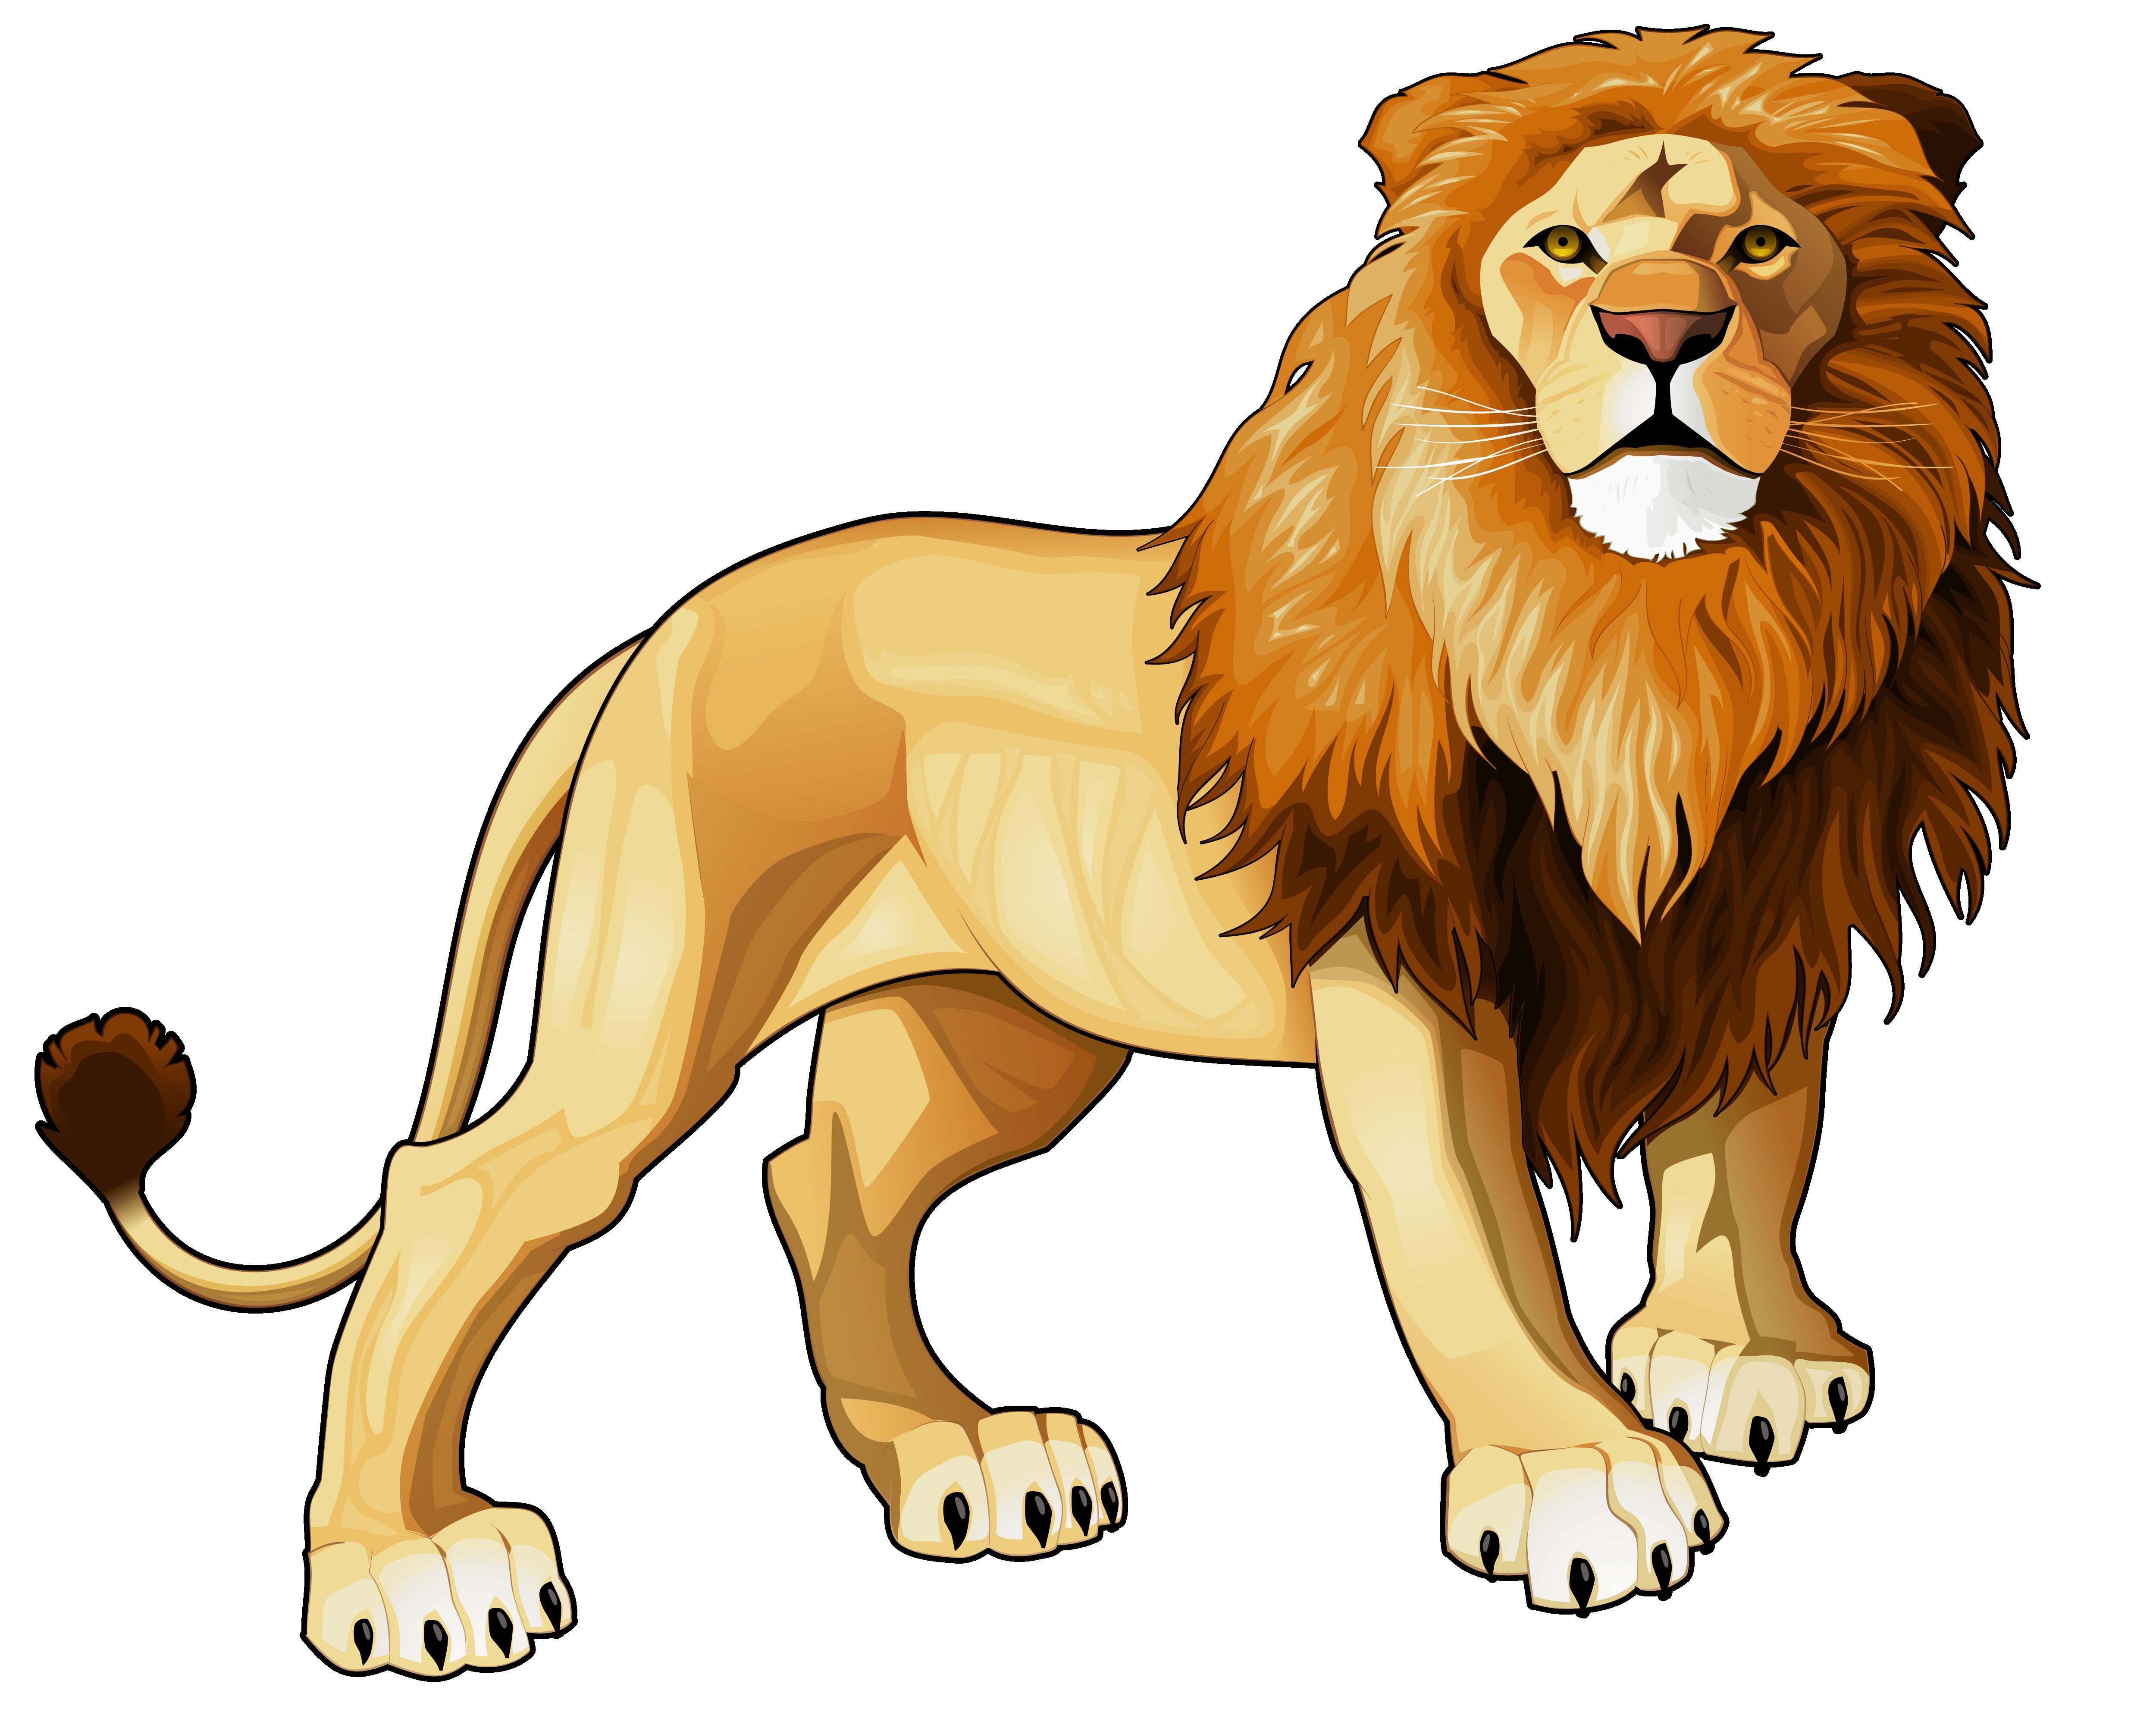 Free lion clipart svg royalty free library Free Lion Cliparts Download Clip Art On Clipart Inside | education ... svg royalty free library